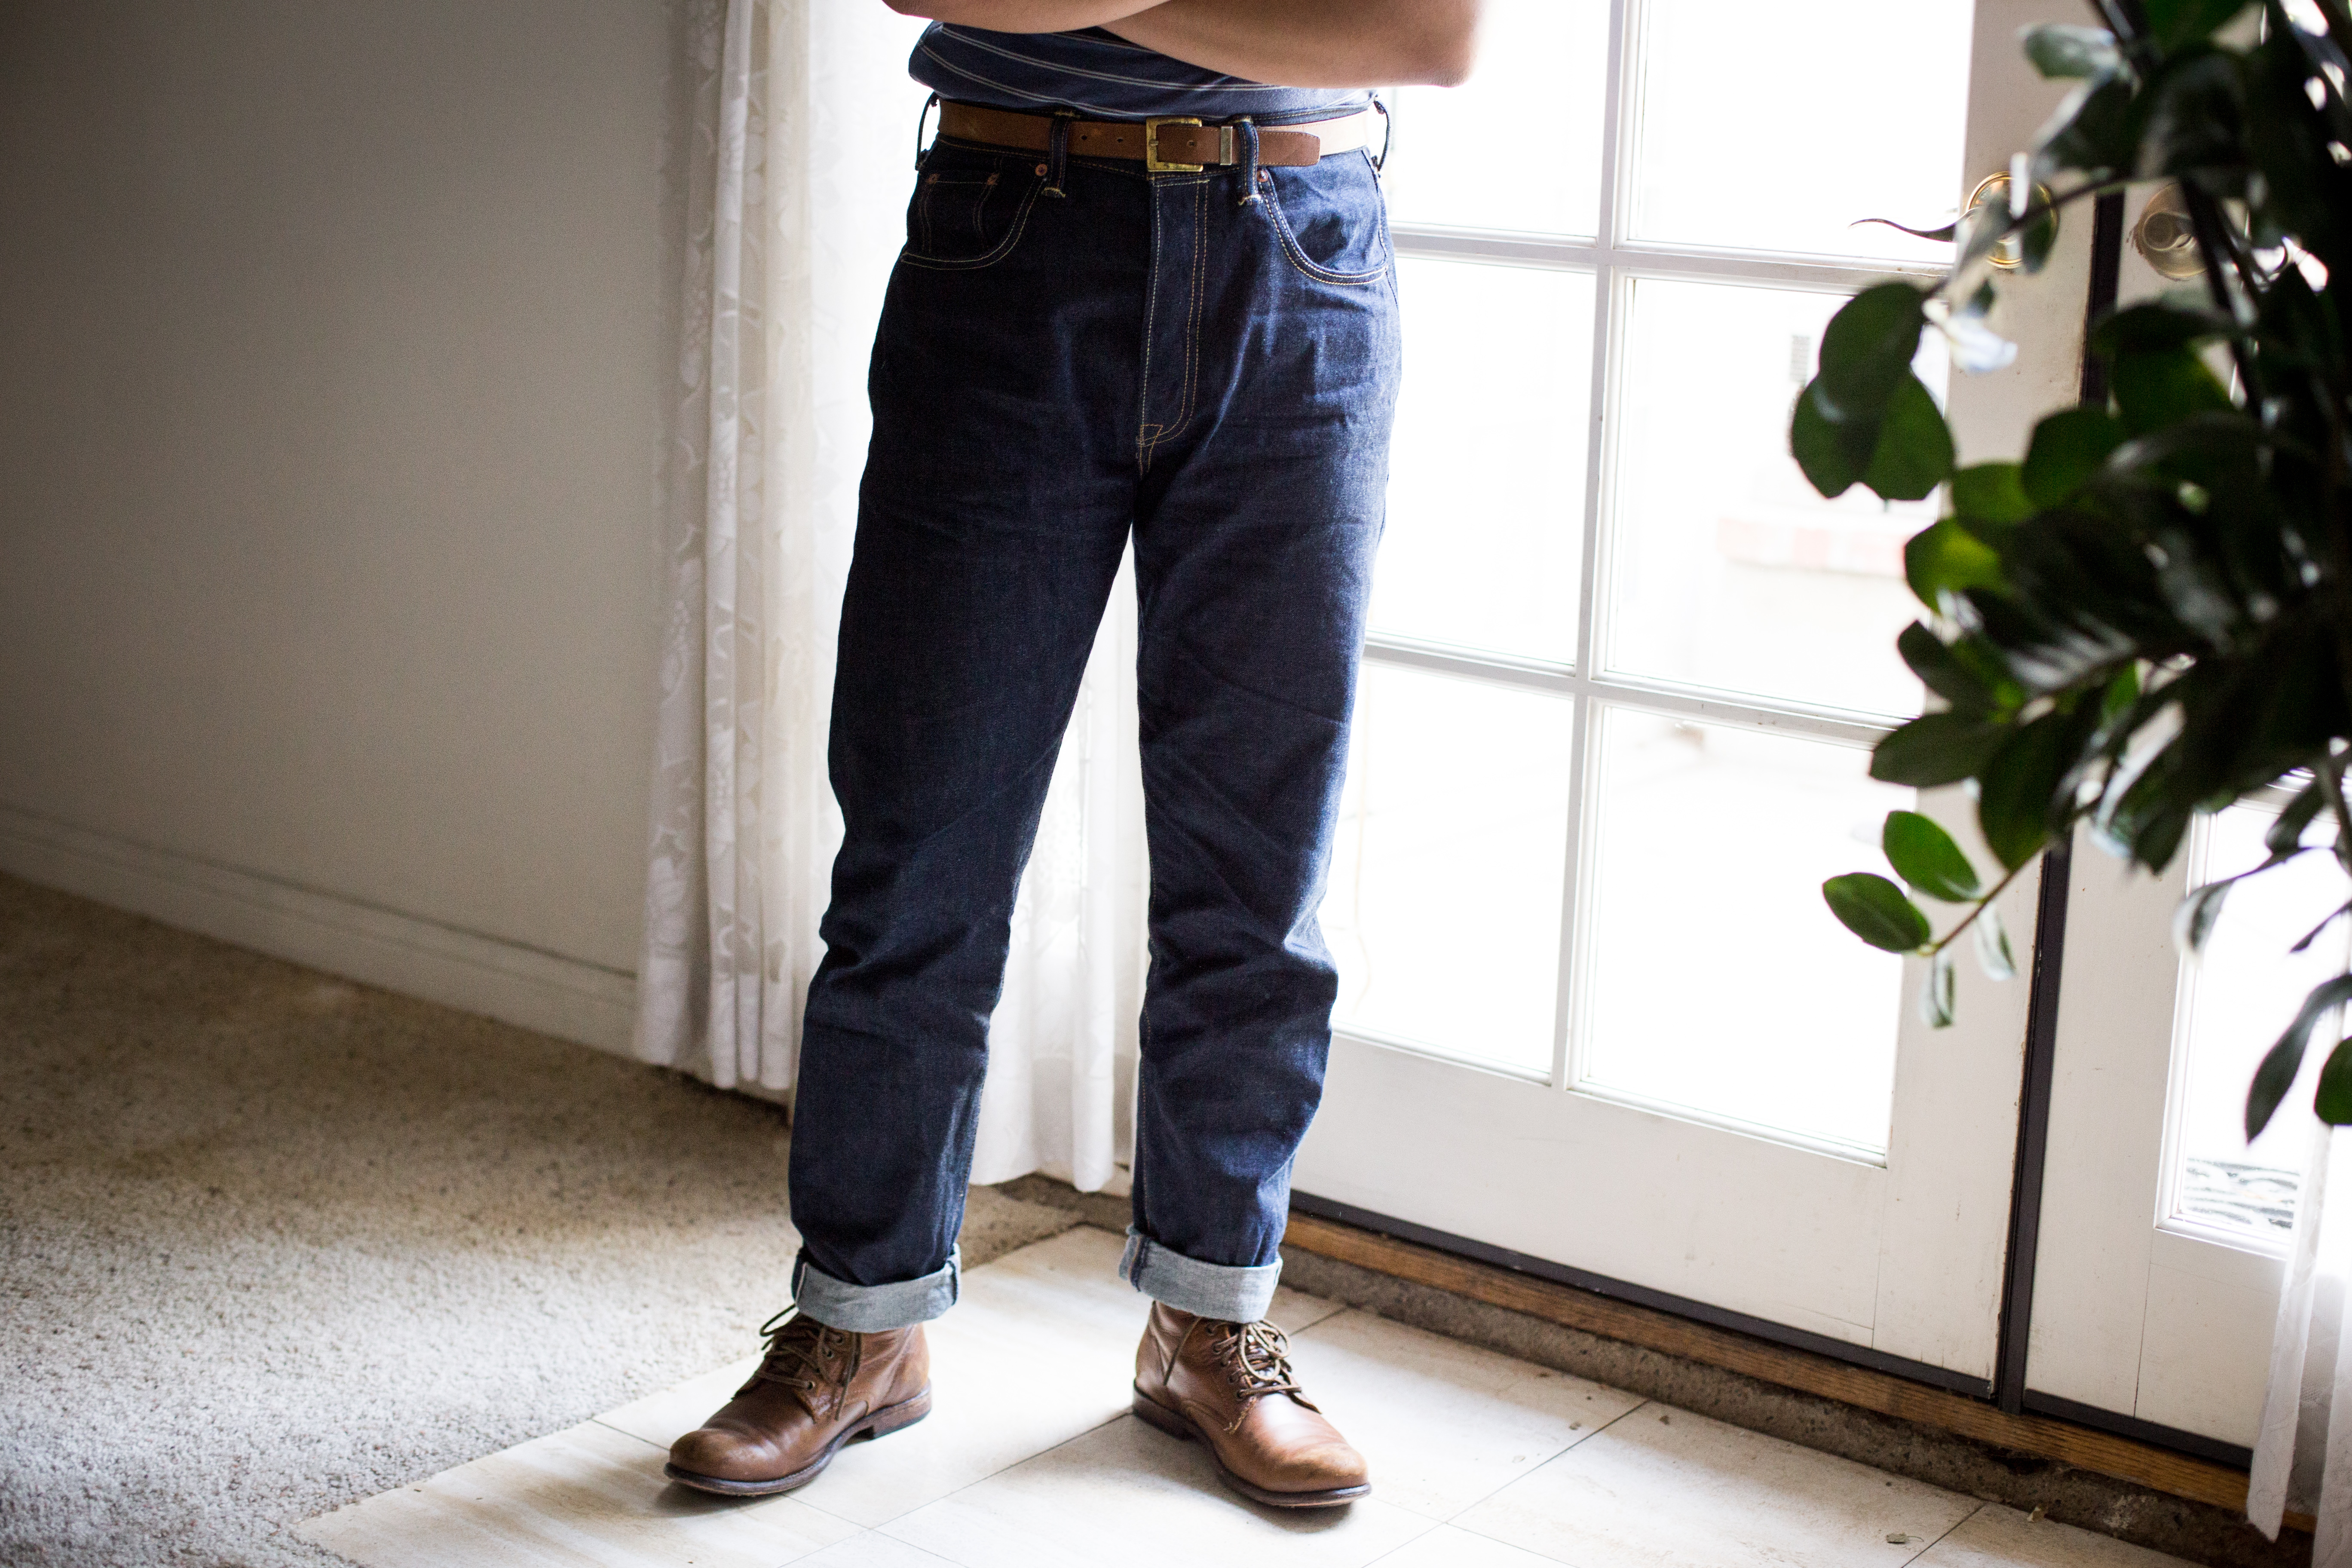 61a0044ce82 The Levi s 501 CT  High Rise Selvedge Denim